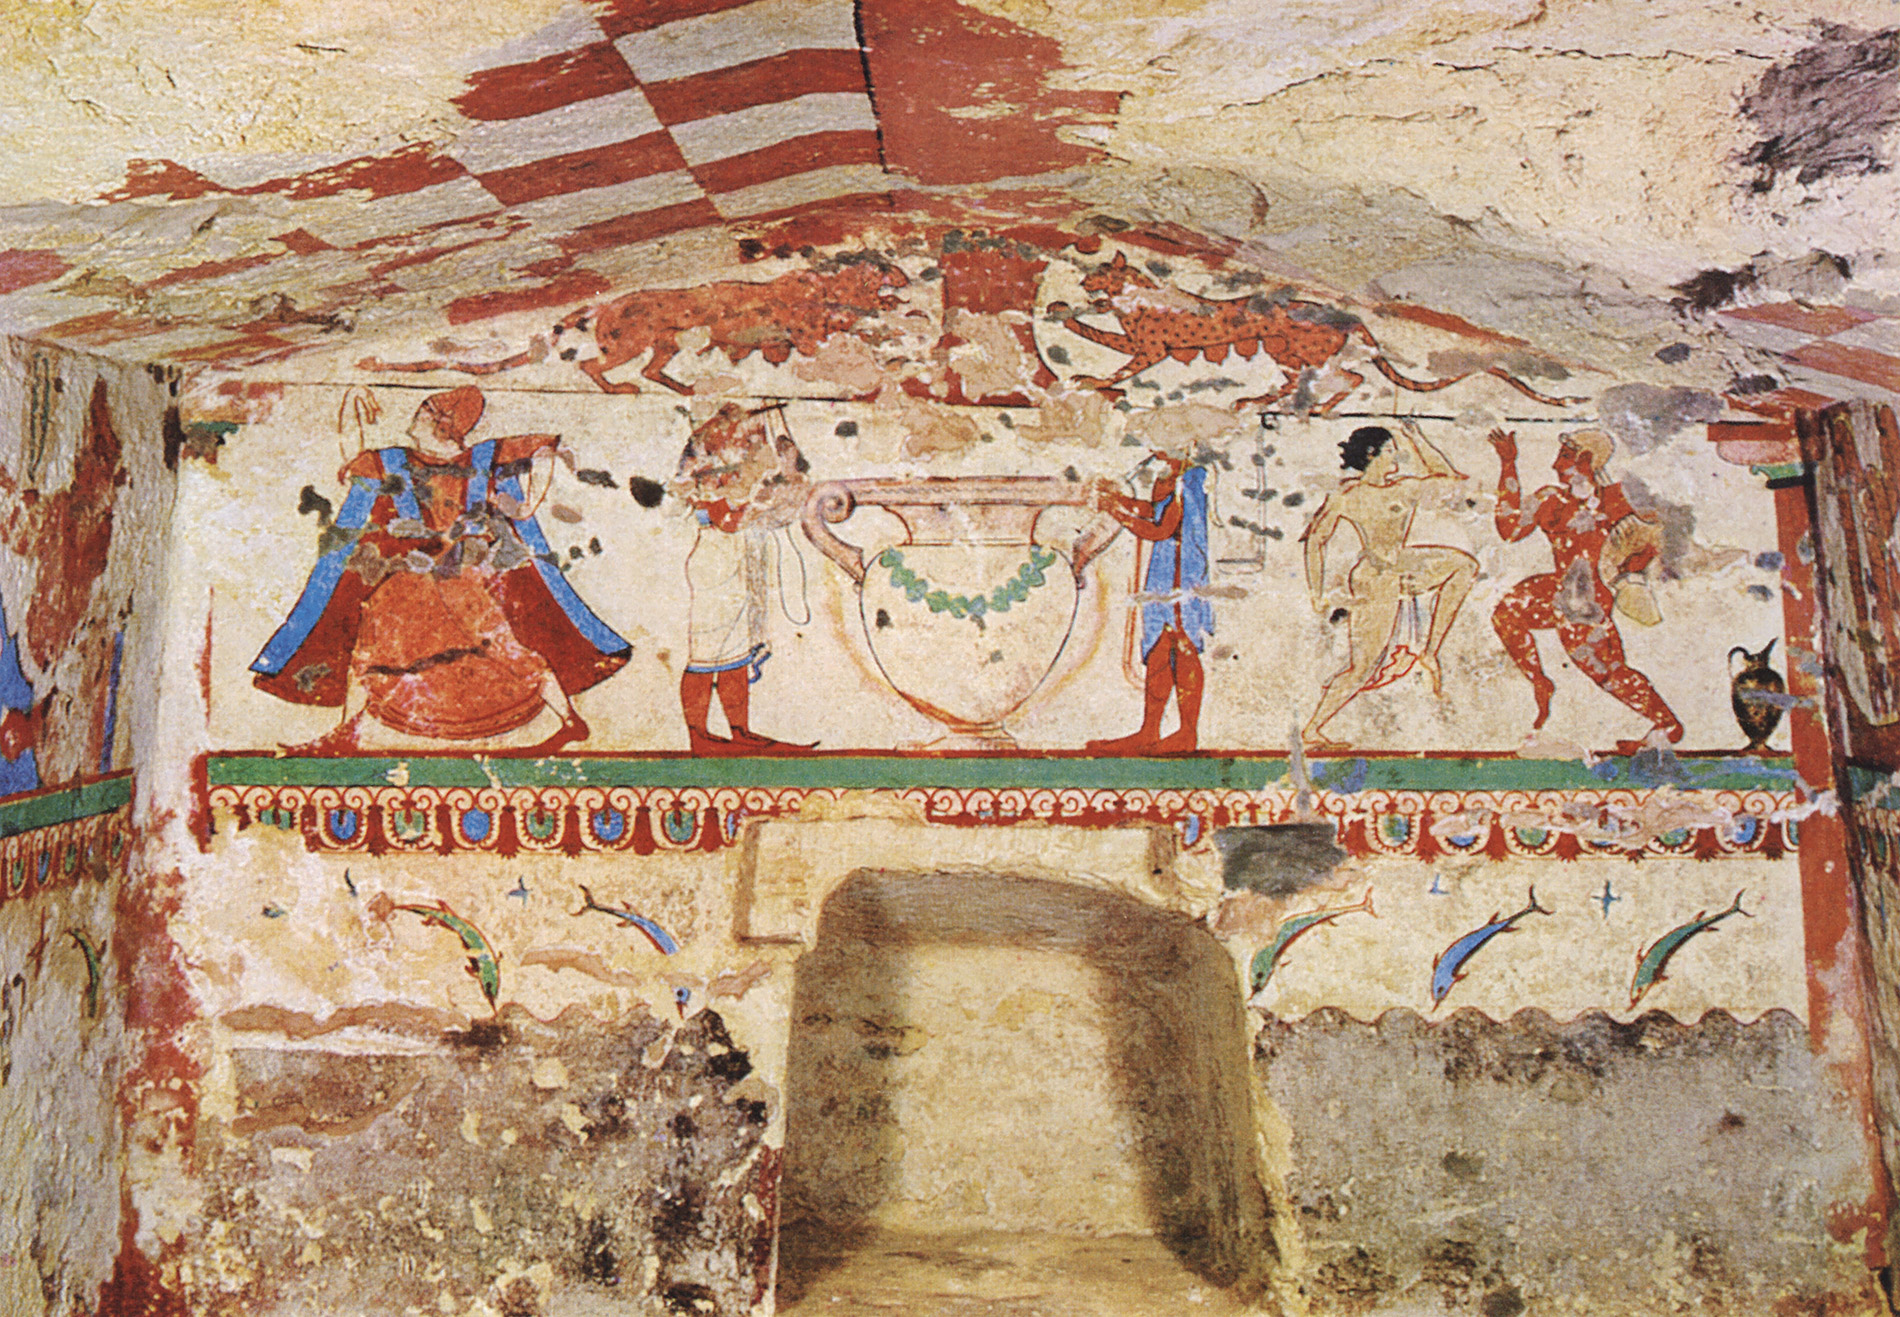 Central composition of the Lionesses Tomb in Tarquinia. 6th century BCE. Tarquinia, Tomb of the Lionesses